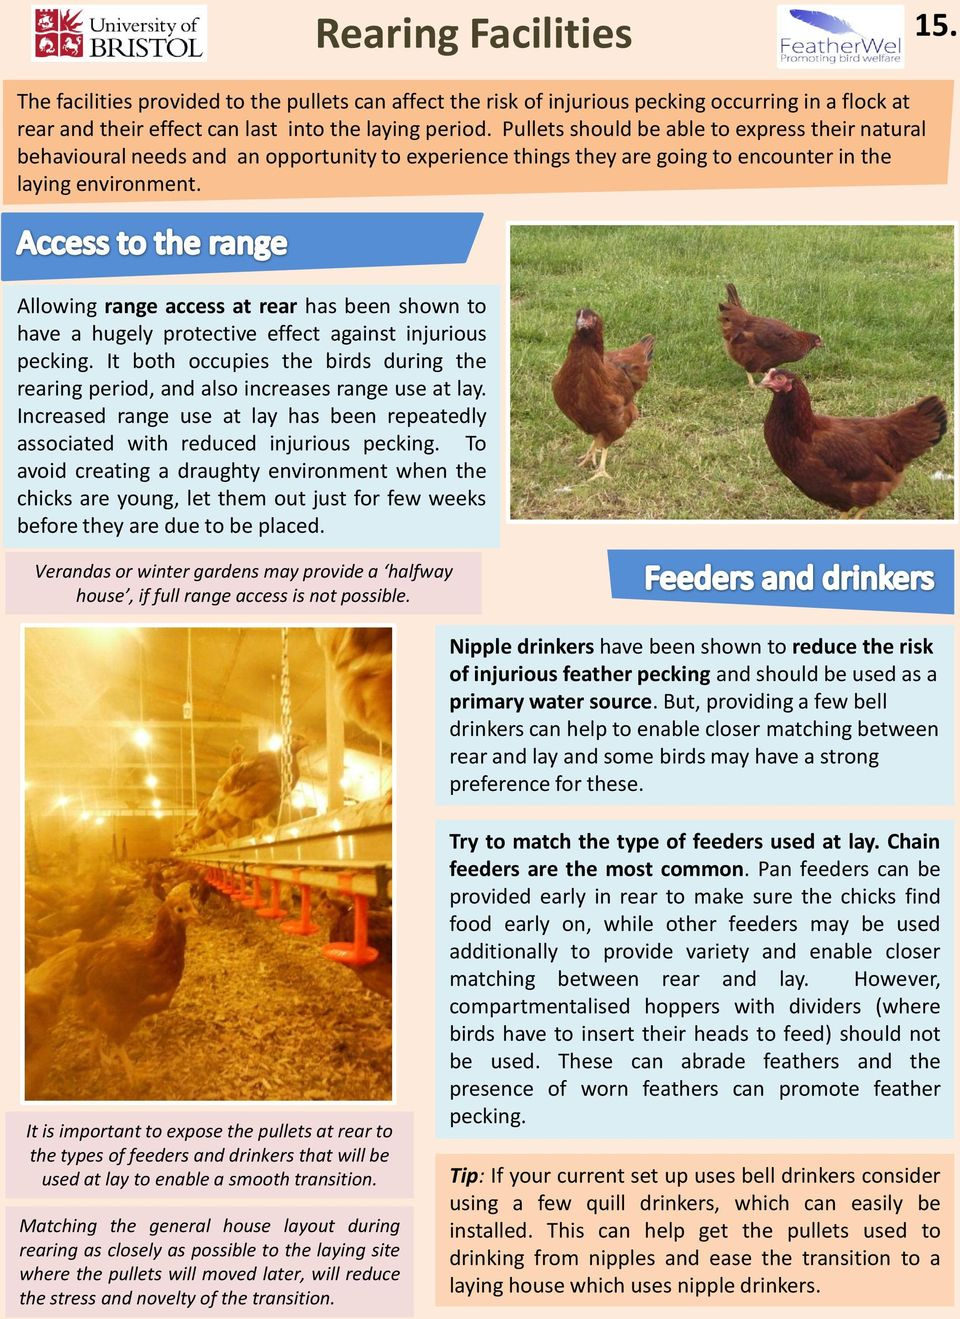 Allowing range access at rear has been shown to have a hugely protective effect against injurious pecking. It both occupies the birds during the rearing period, and also increases range use at lay.